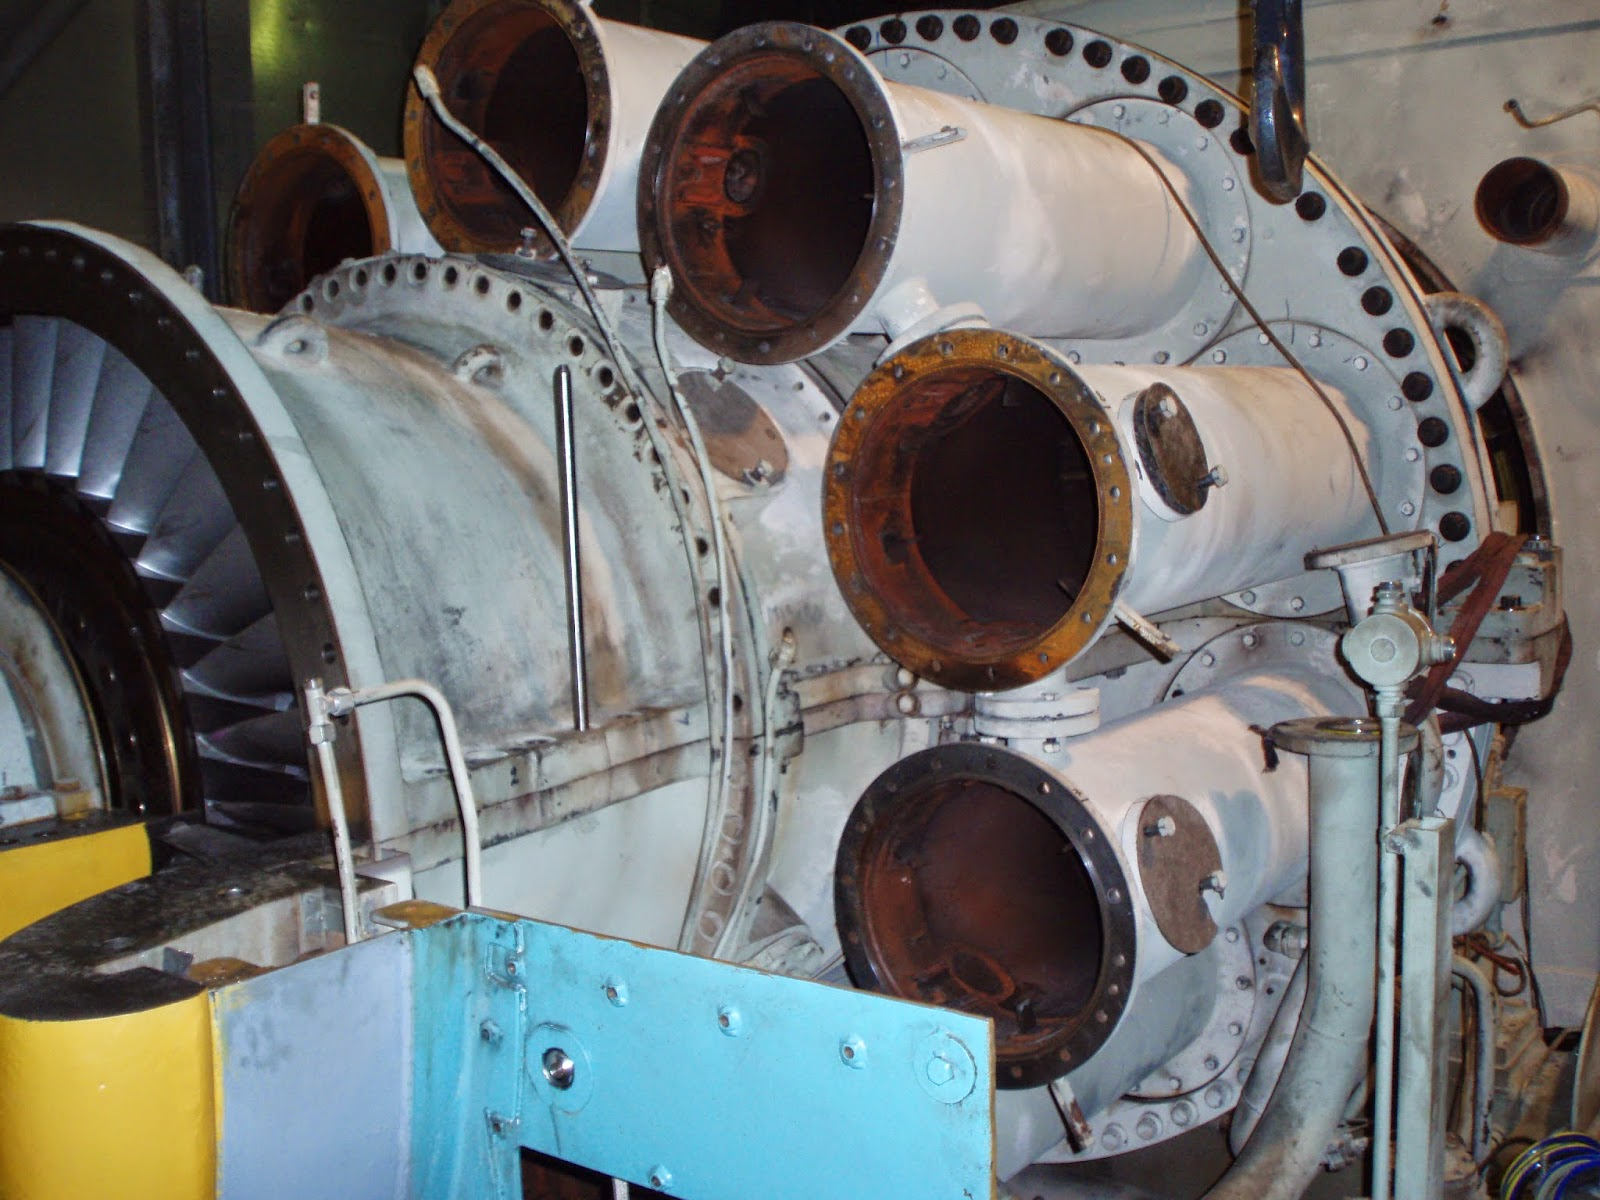 Engineering Photos Videos And Articels  Engineering Search Engine   Alstom Frame 5 Turbine